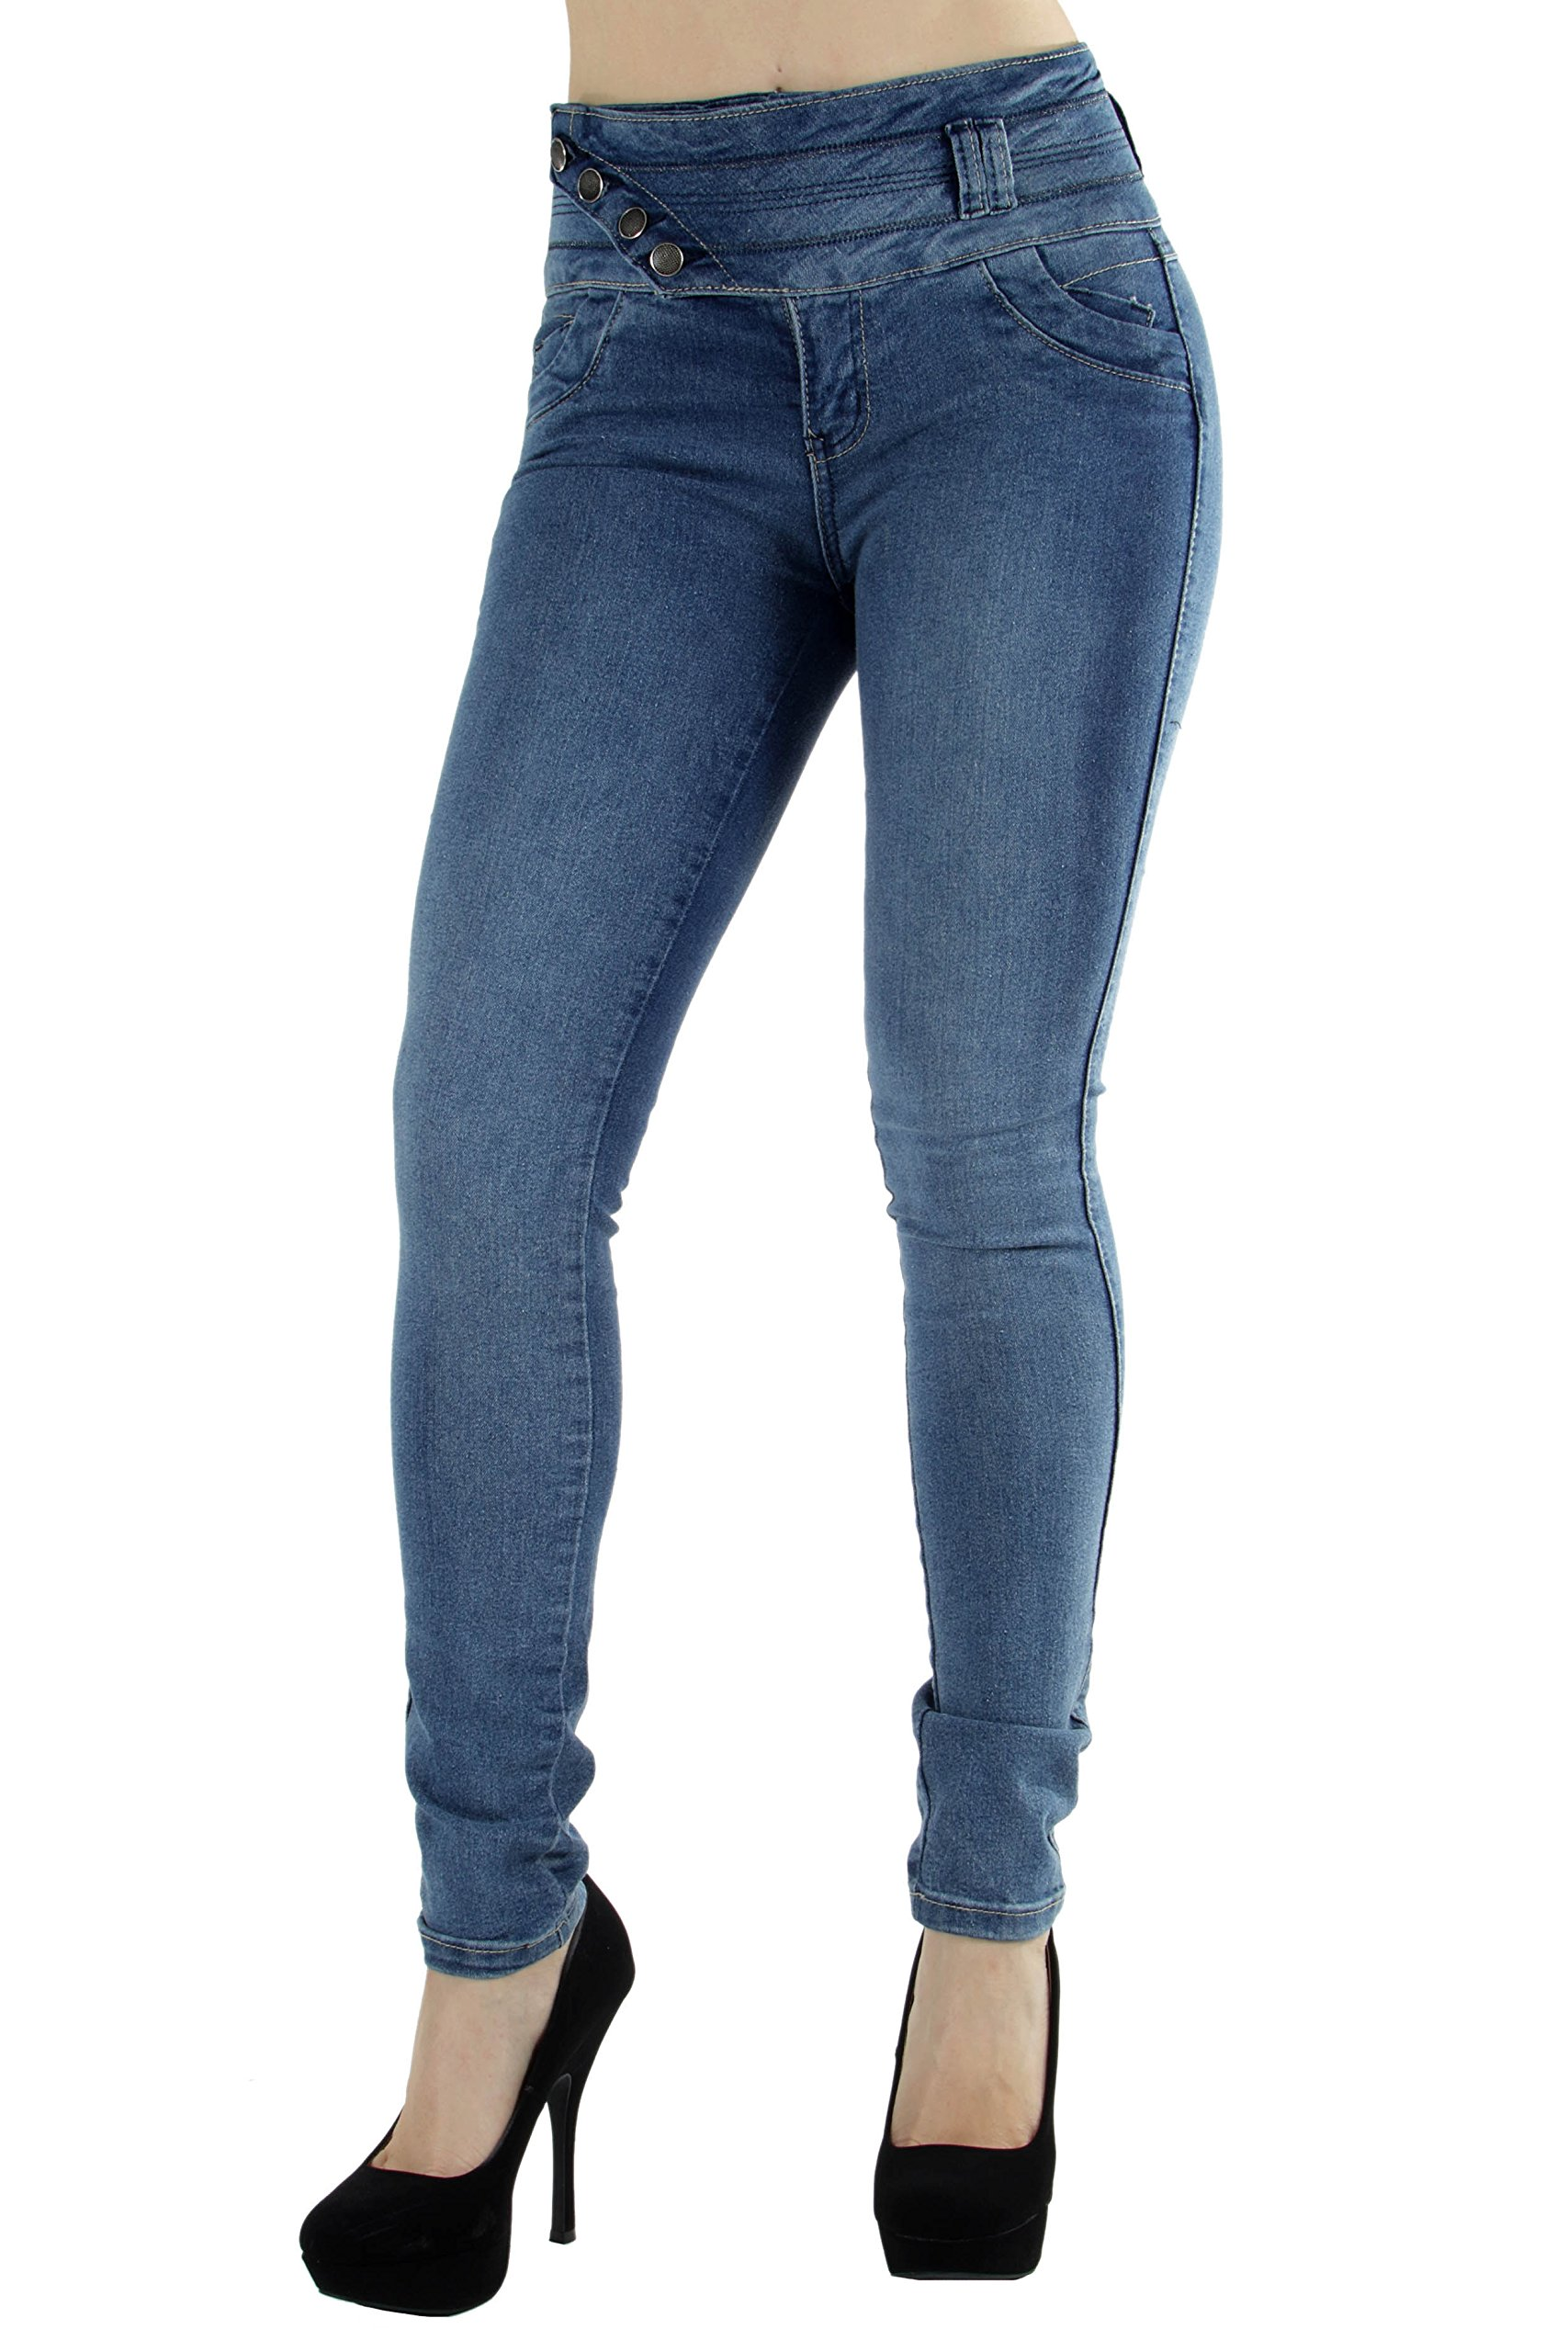 Style M1177– Colombian Design, Mid Waist, Butt Lift, Levanta Cola, Skinny Jeans in M. Blue Size 5